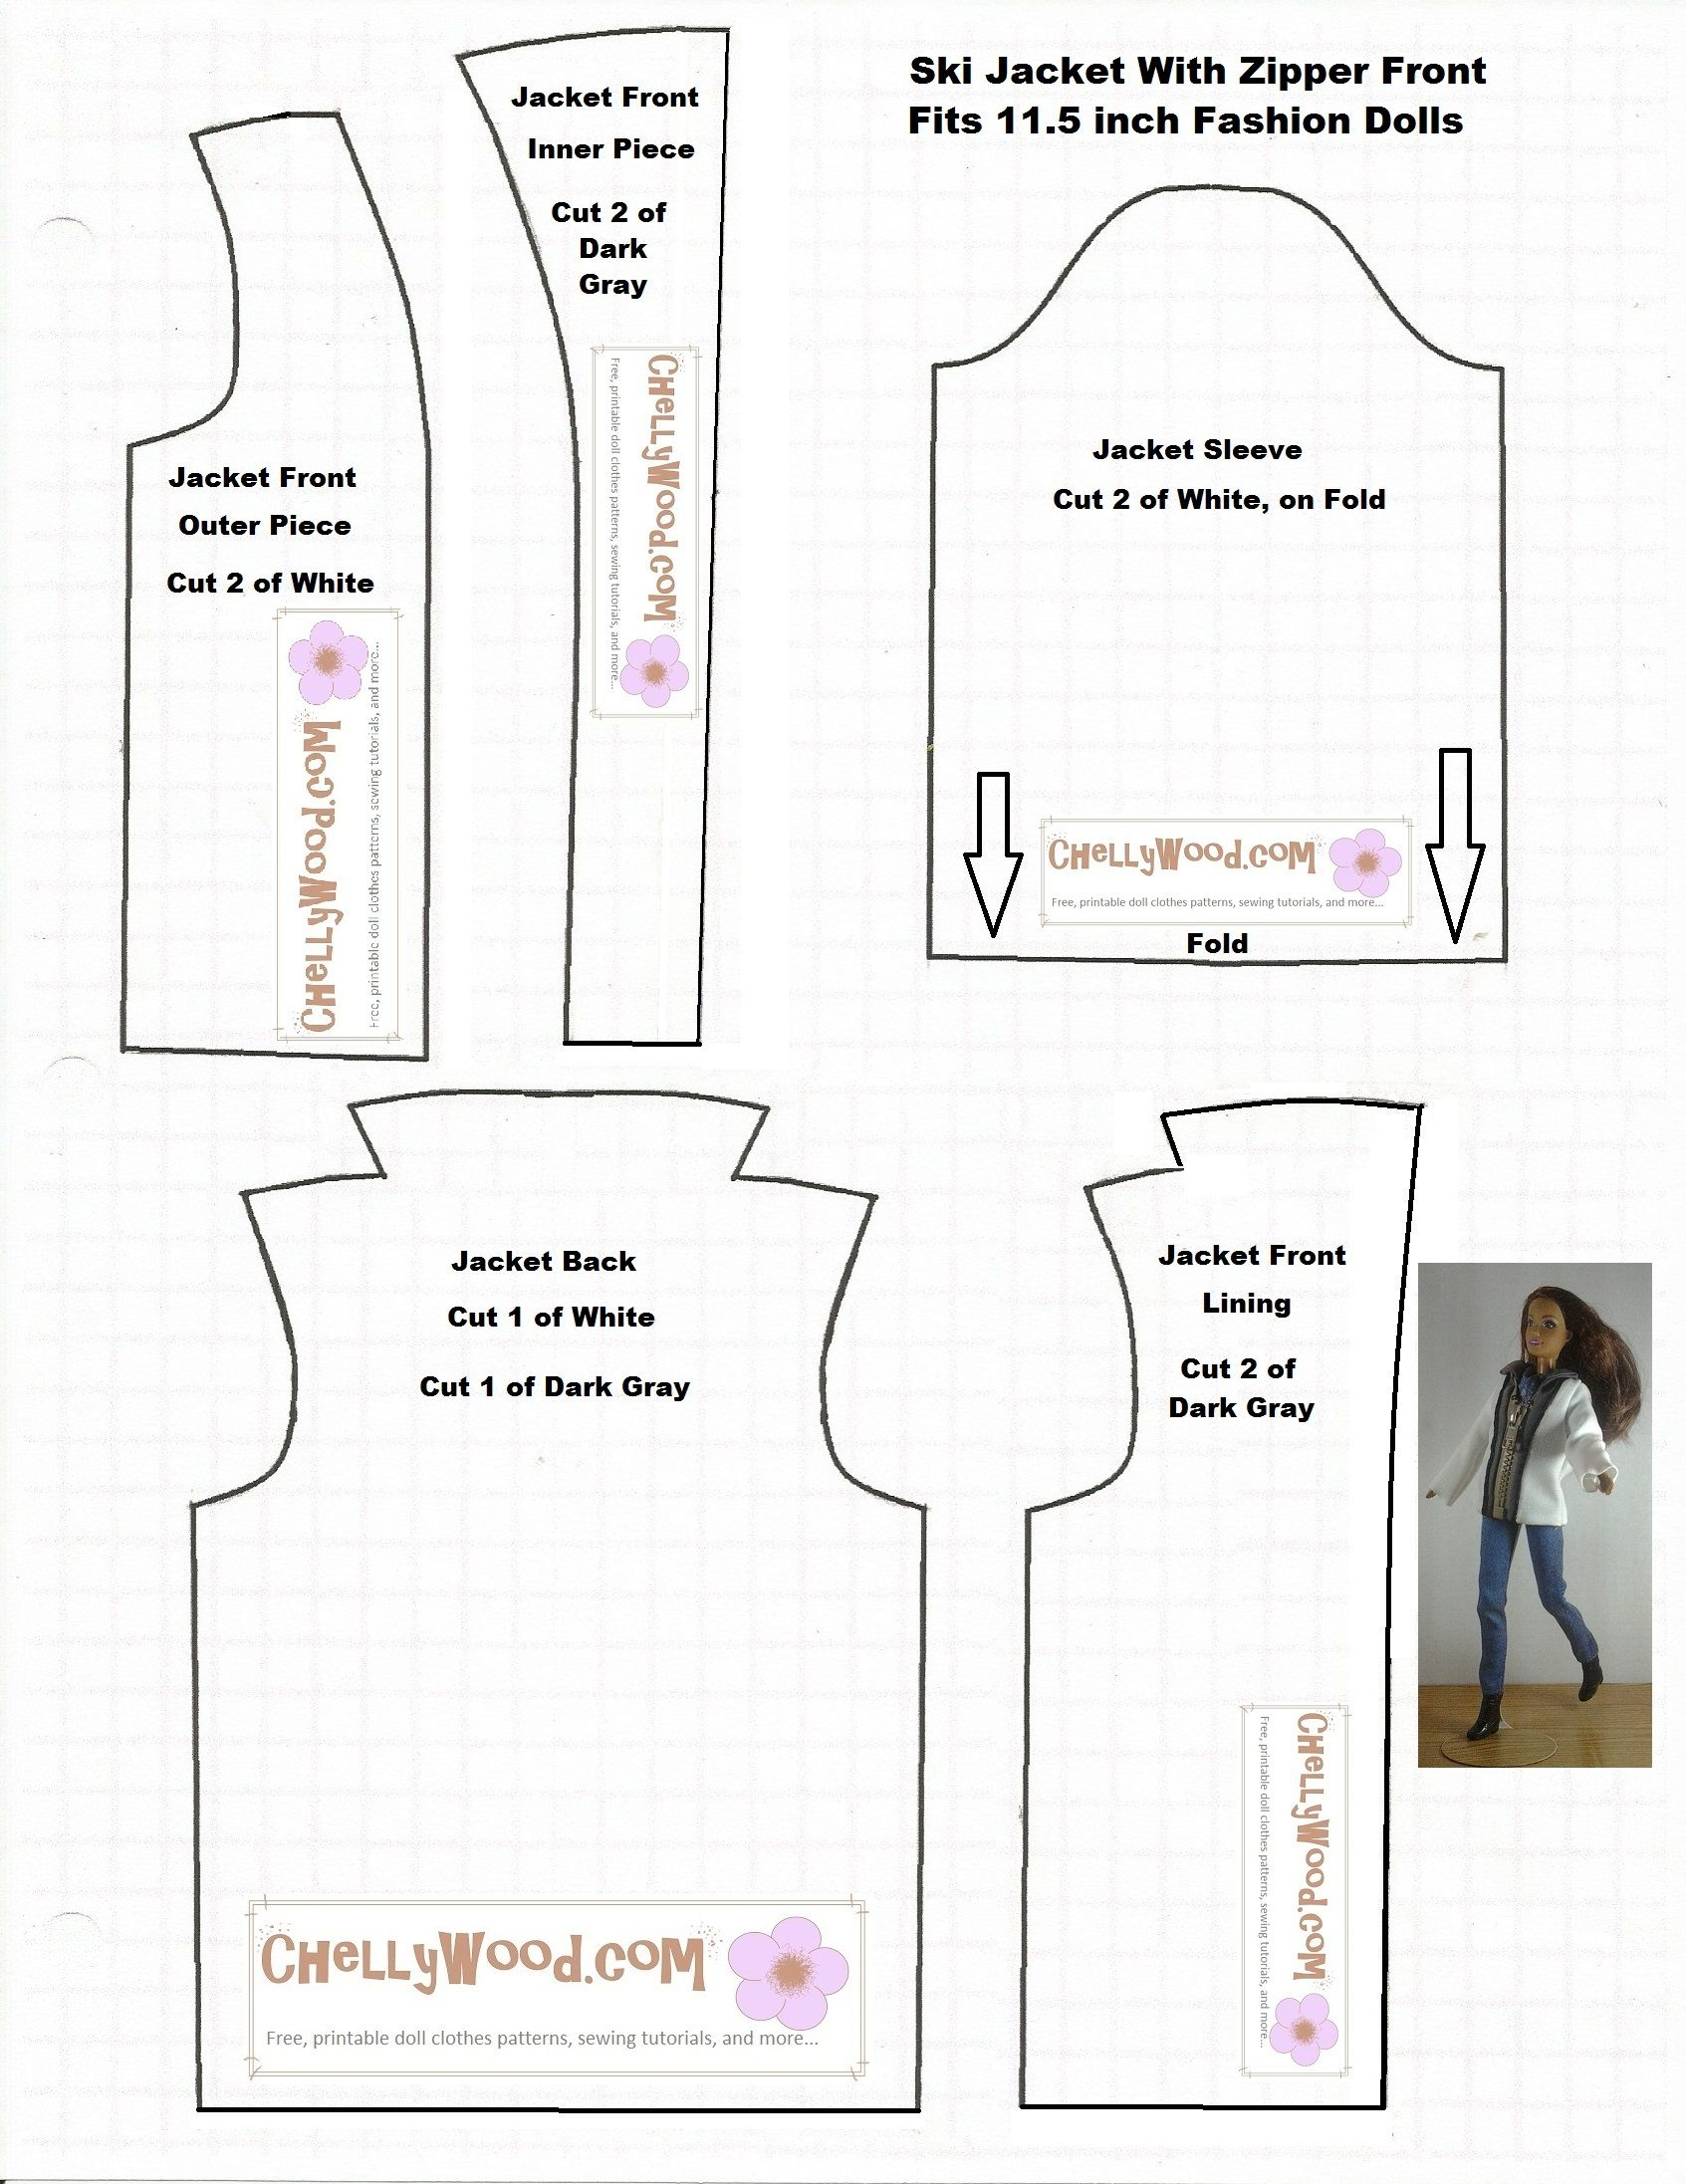 Doll Clothes Patterns | Chelly Wood | Patterns | Barbie Sewing - Free Printable Patterns For Sewing Doll Clothes